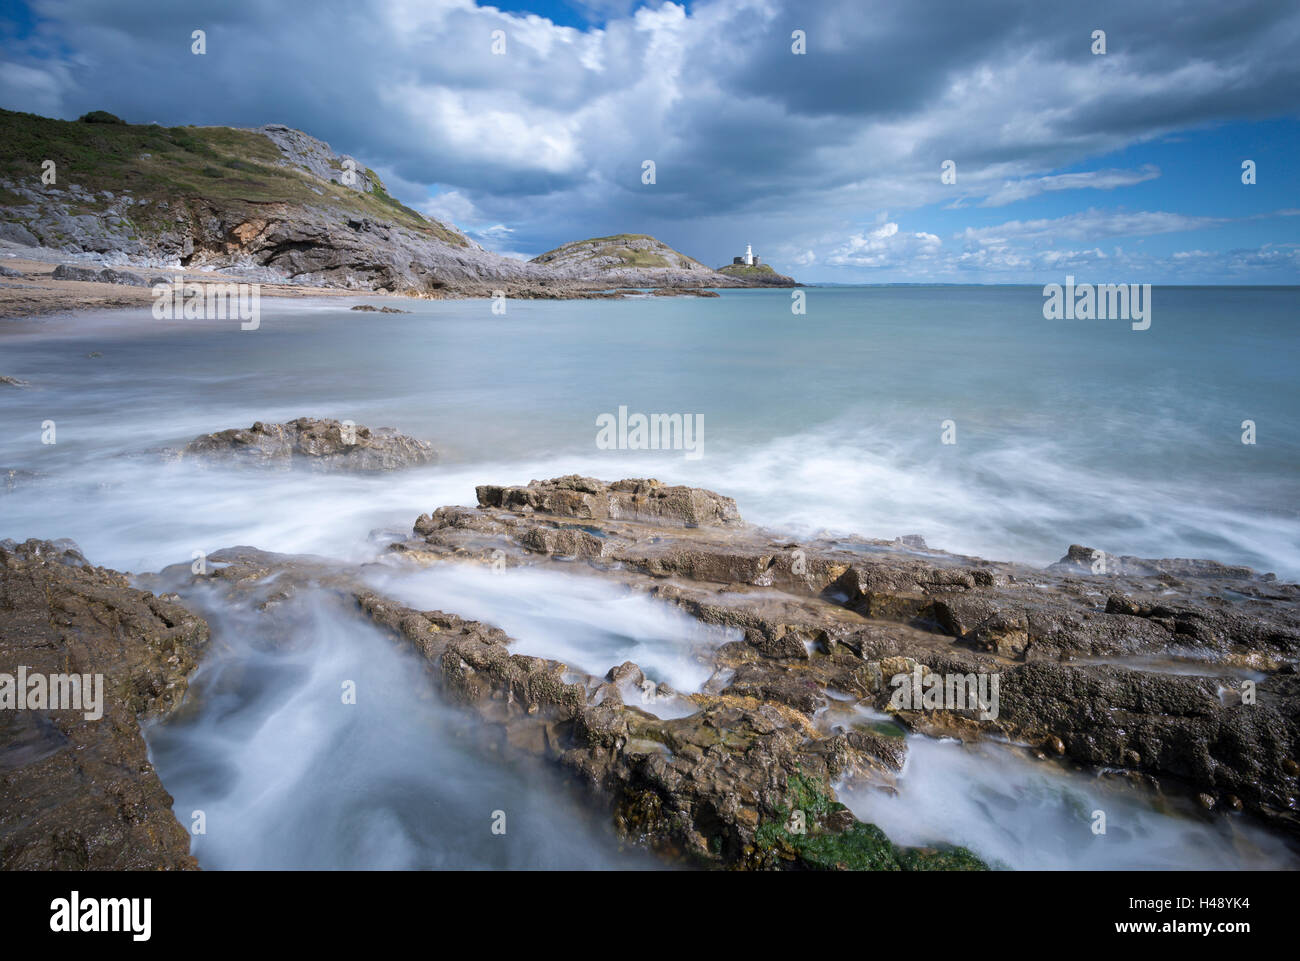 Mumbles lighthouse from Bracelet Bay, Gower Peninsula, Swansea, Wales. Summer (August) 2014. - Stock Image